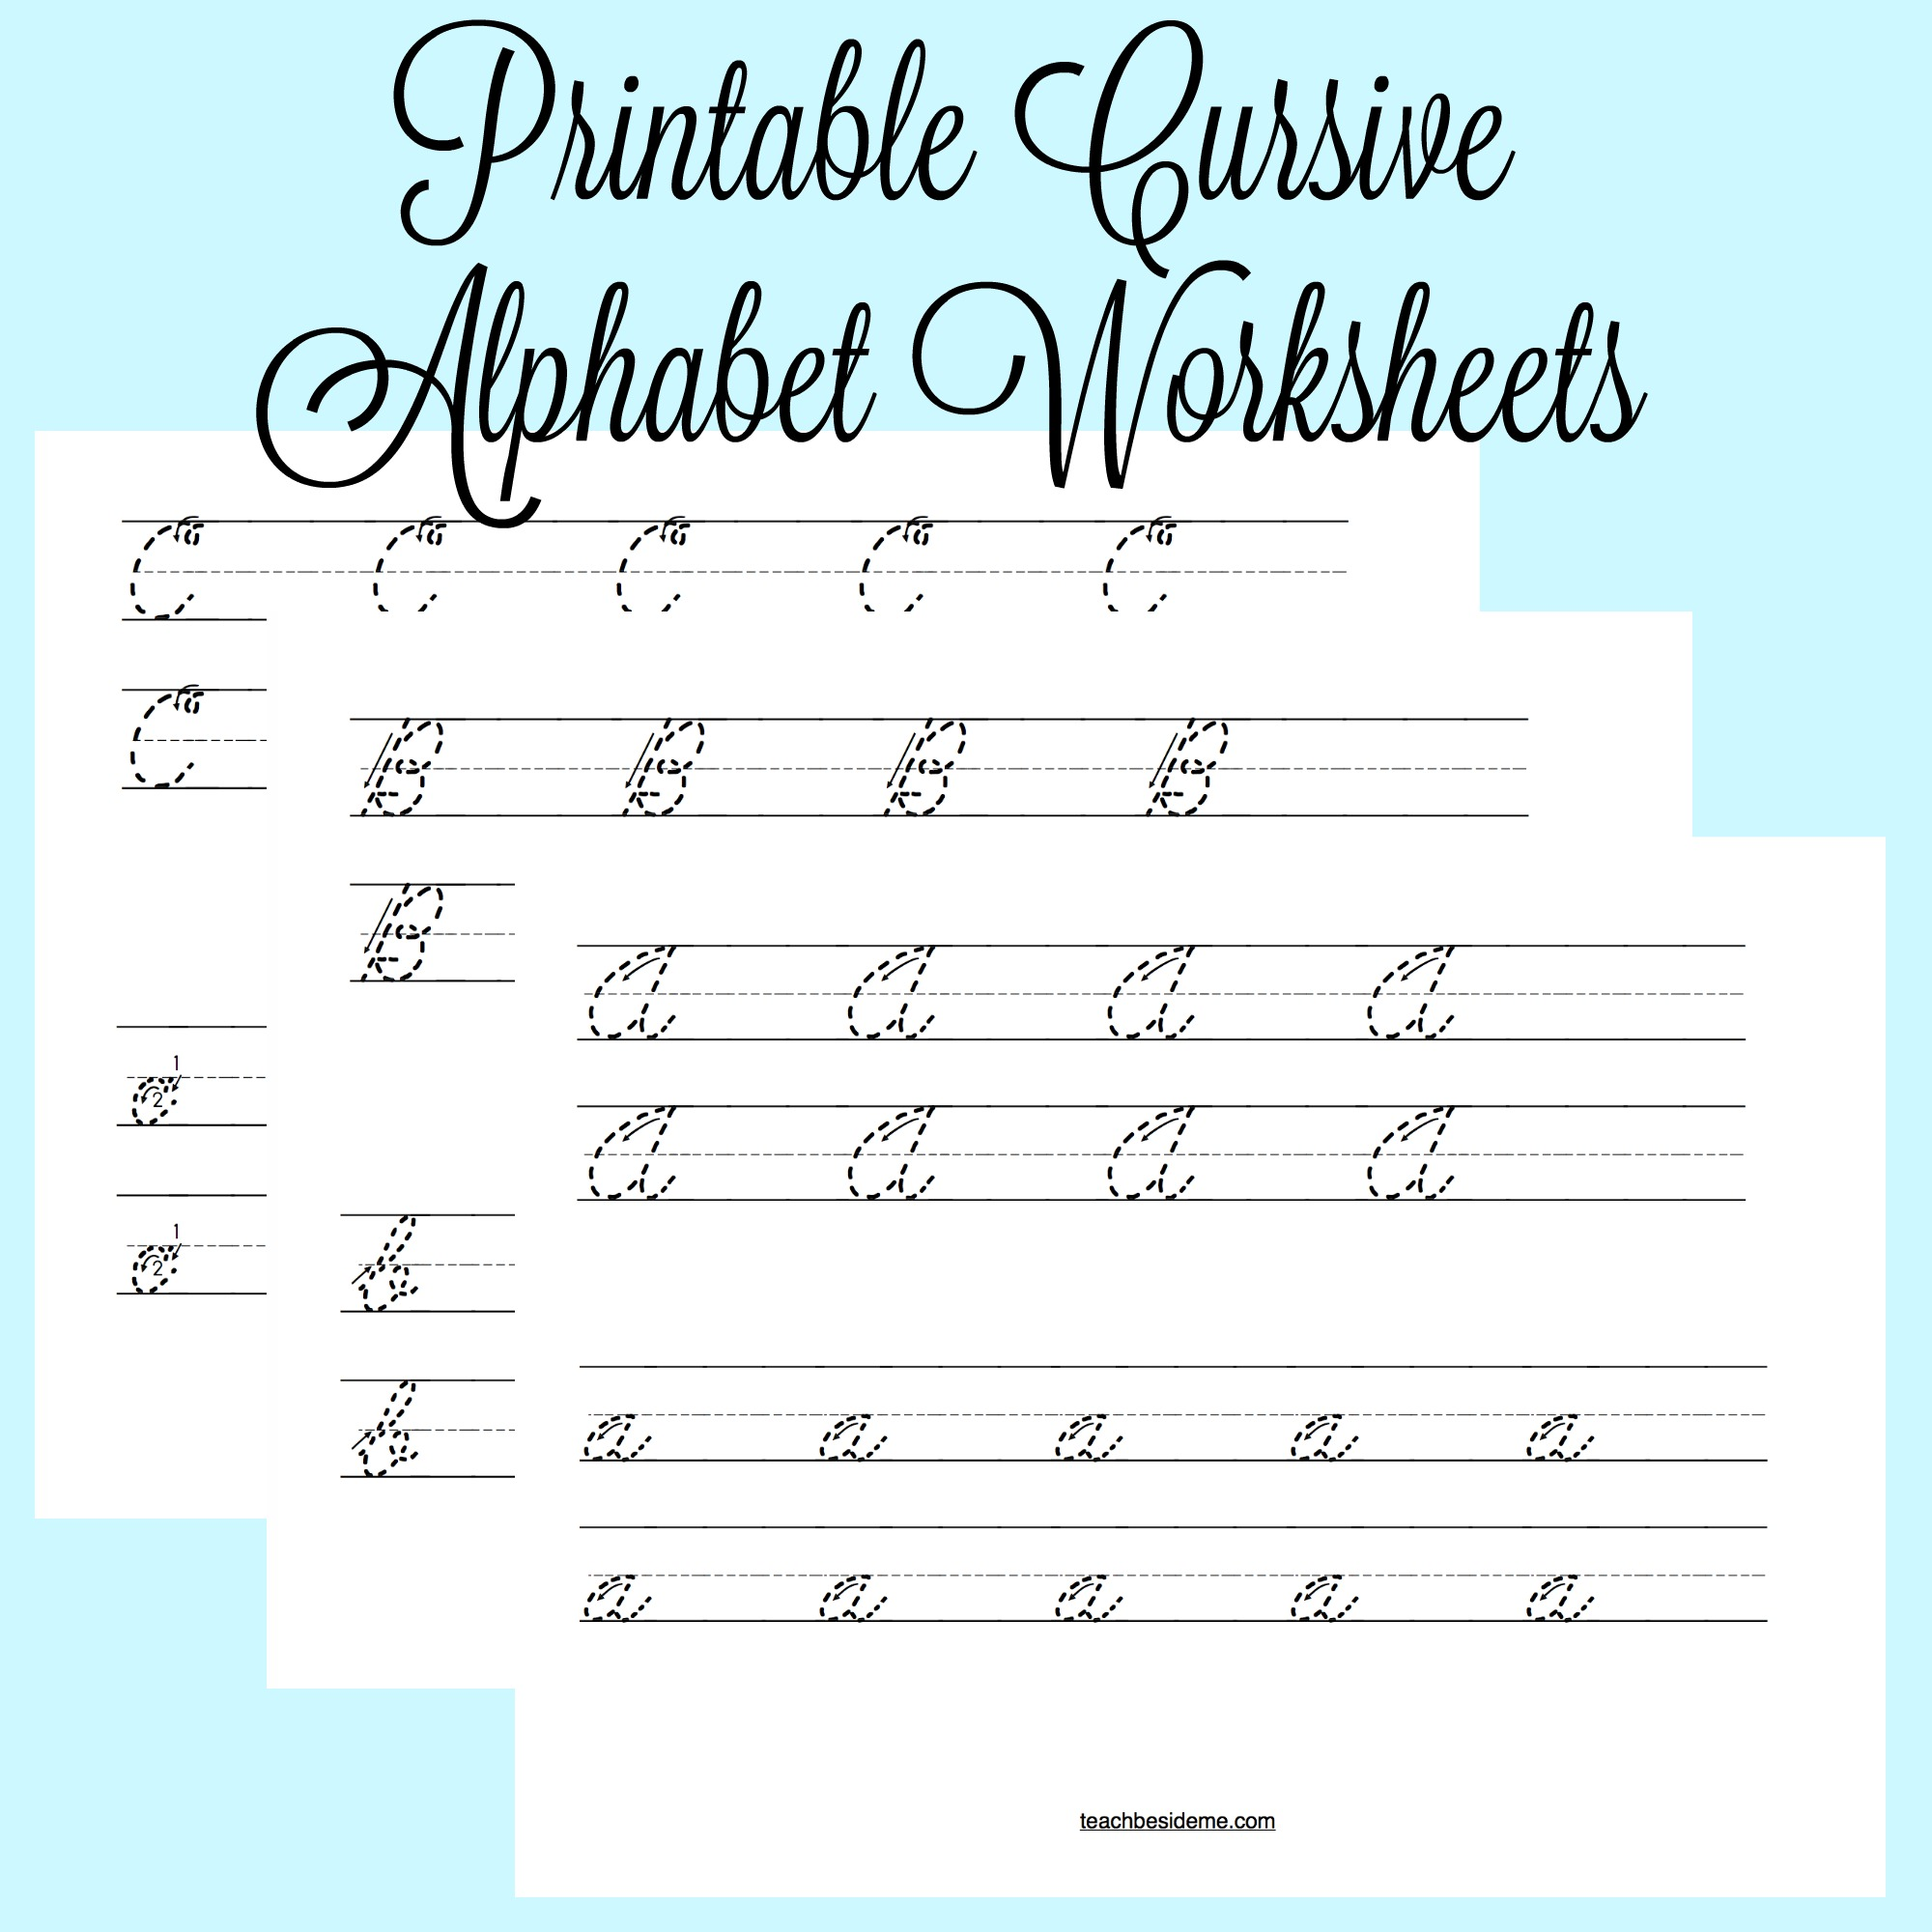 Printable Cursive Alphabet Worksheets